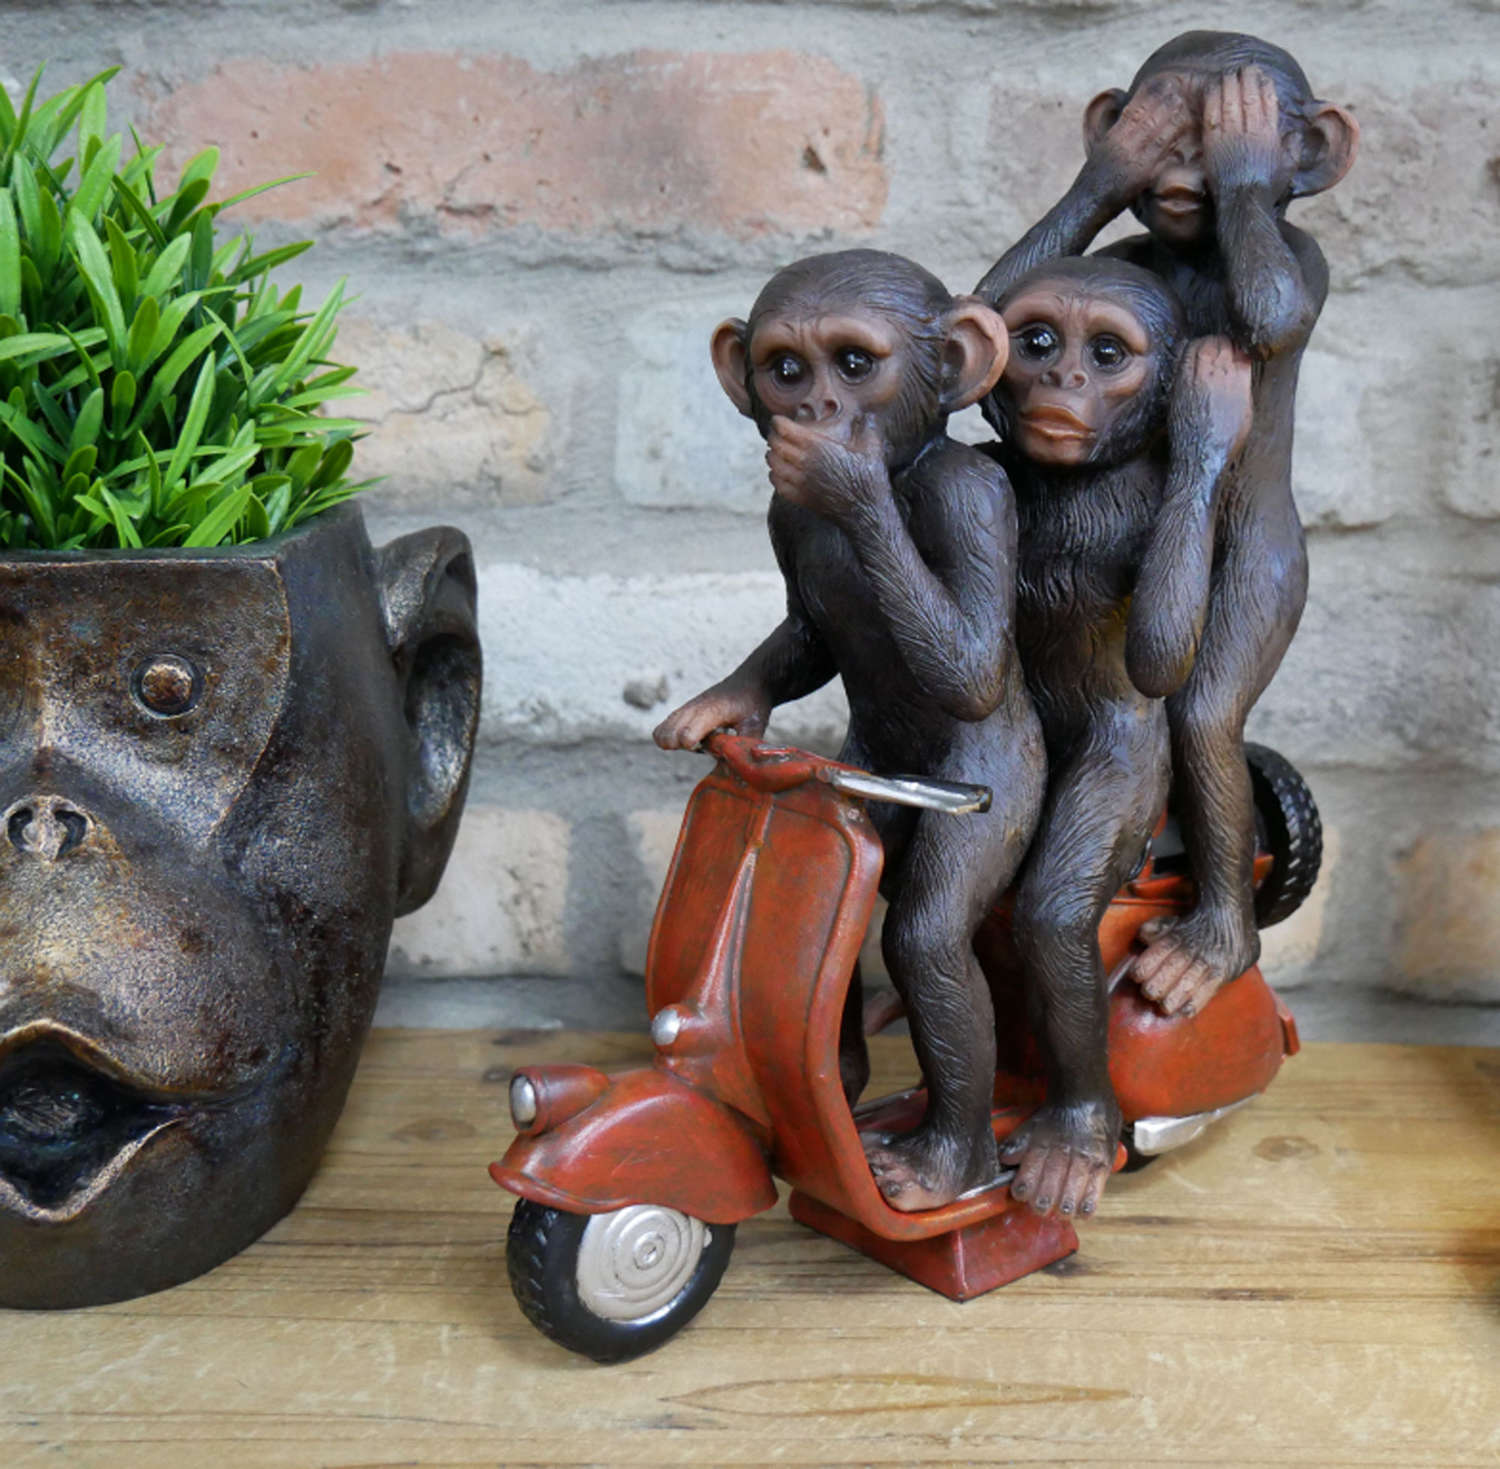 Monkey on a scooter ornament